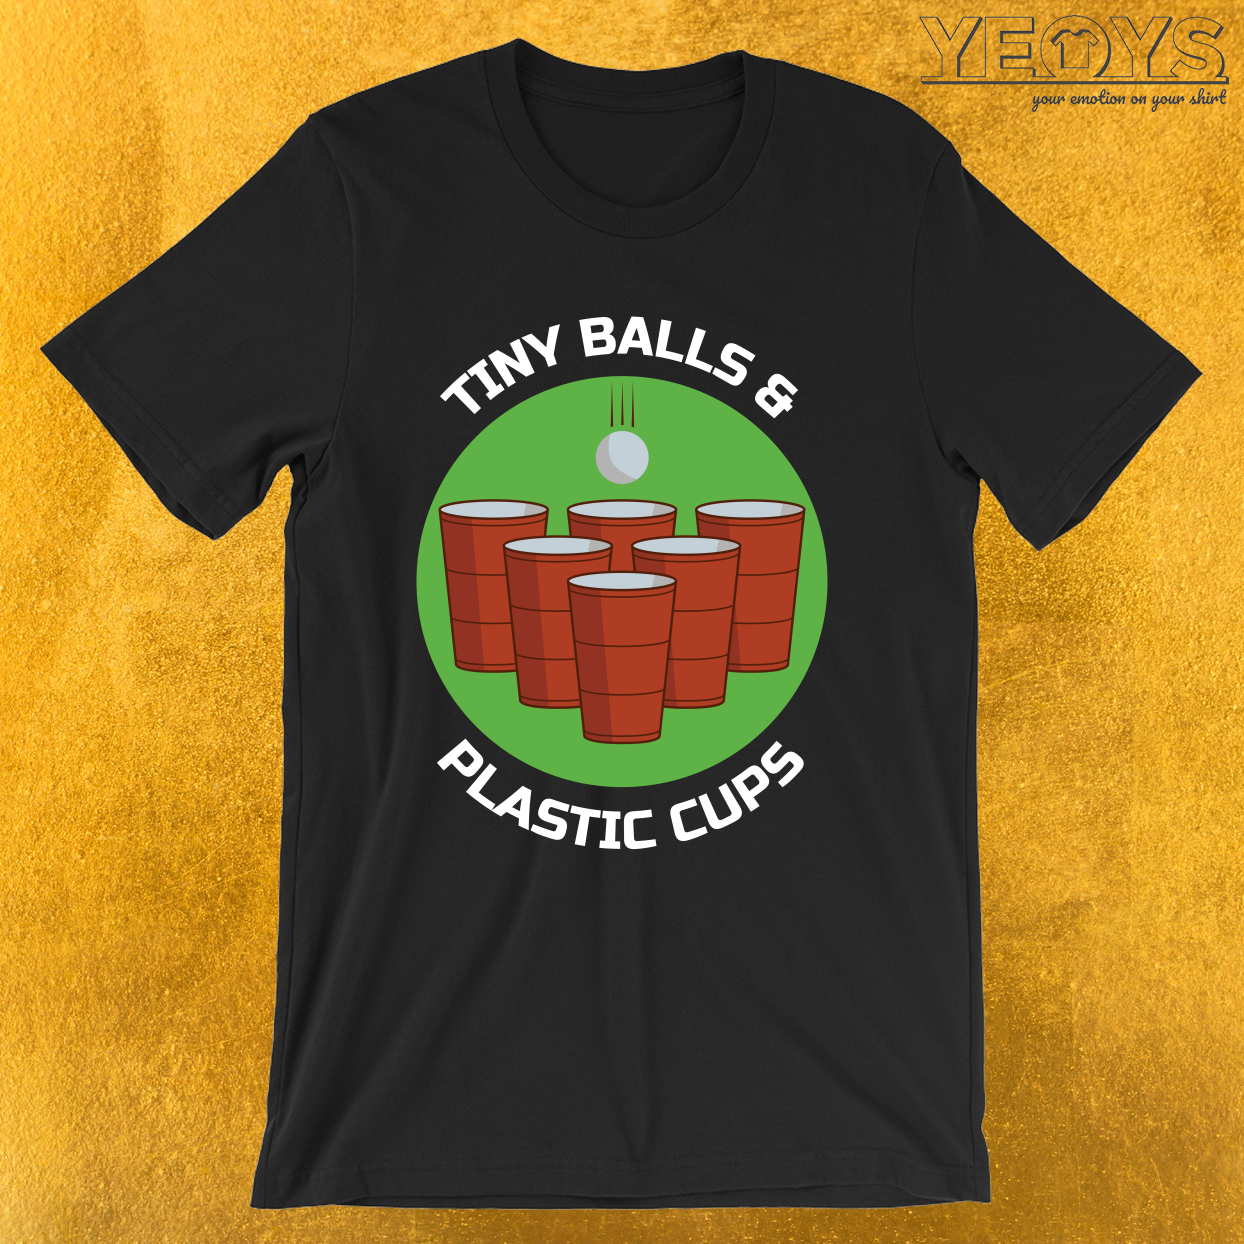 Tiny Balls & Plastic Cups – Funny Beer Pong Tee